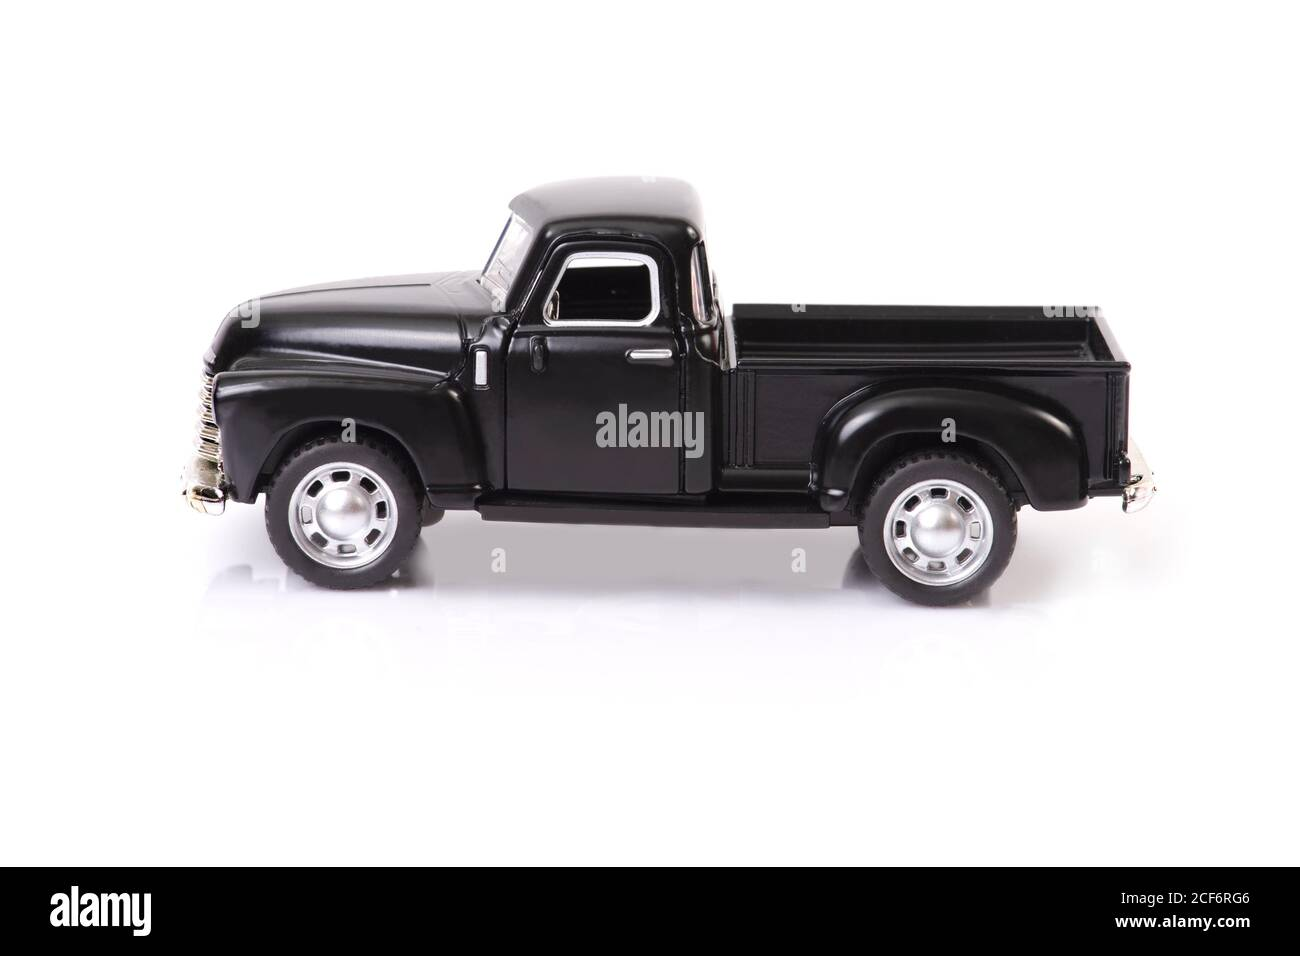 Side View Of Black Old Style Model Pickup Truck On White Background Stock Photo Alamy